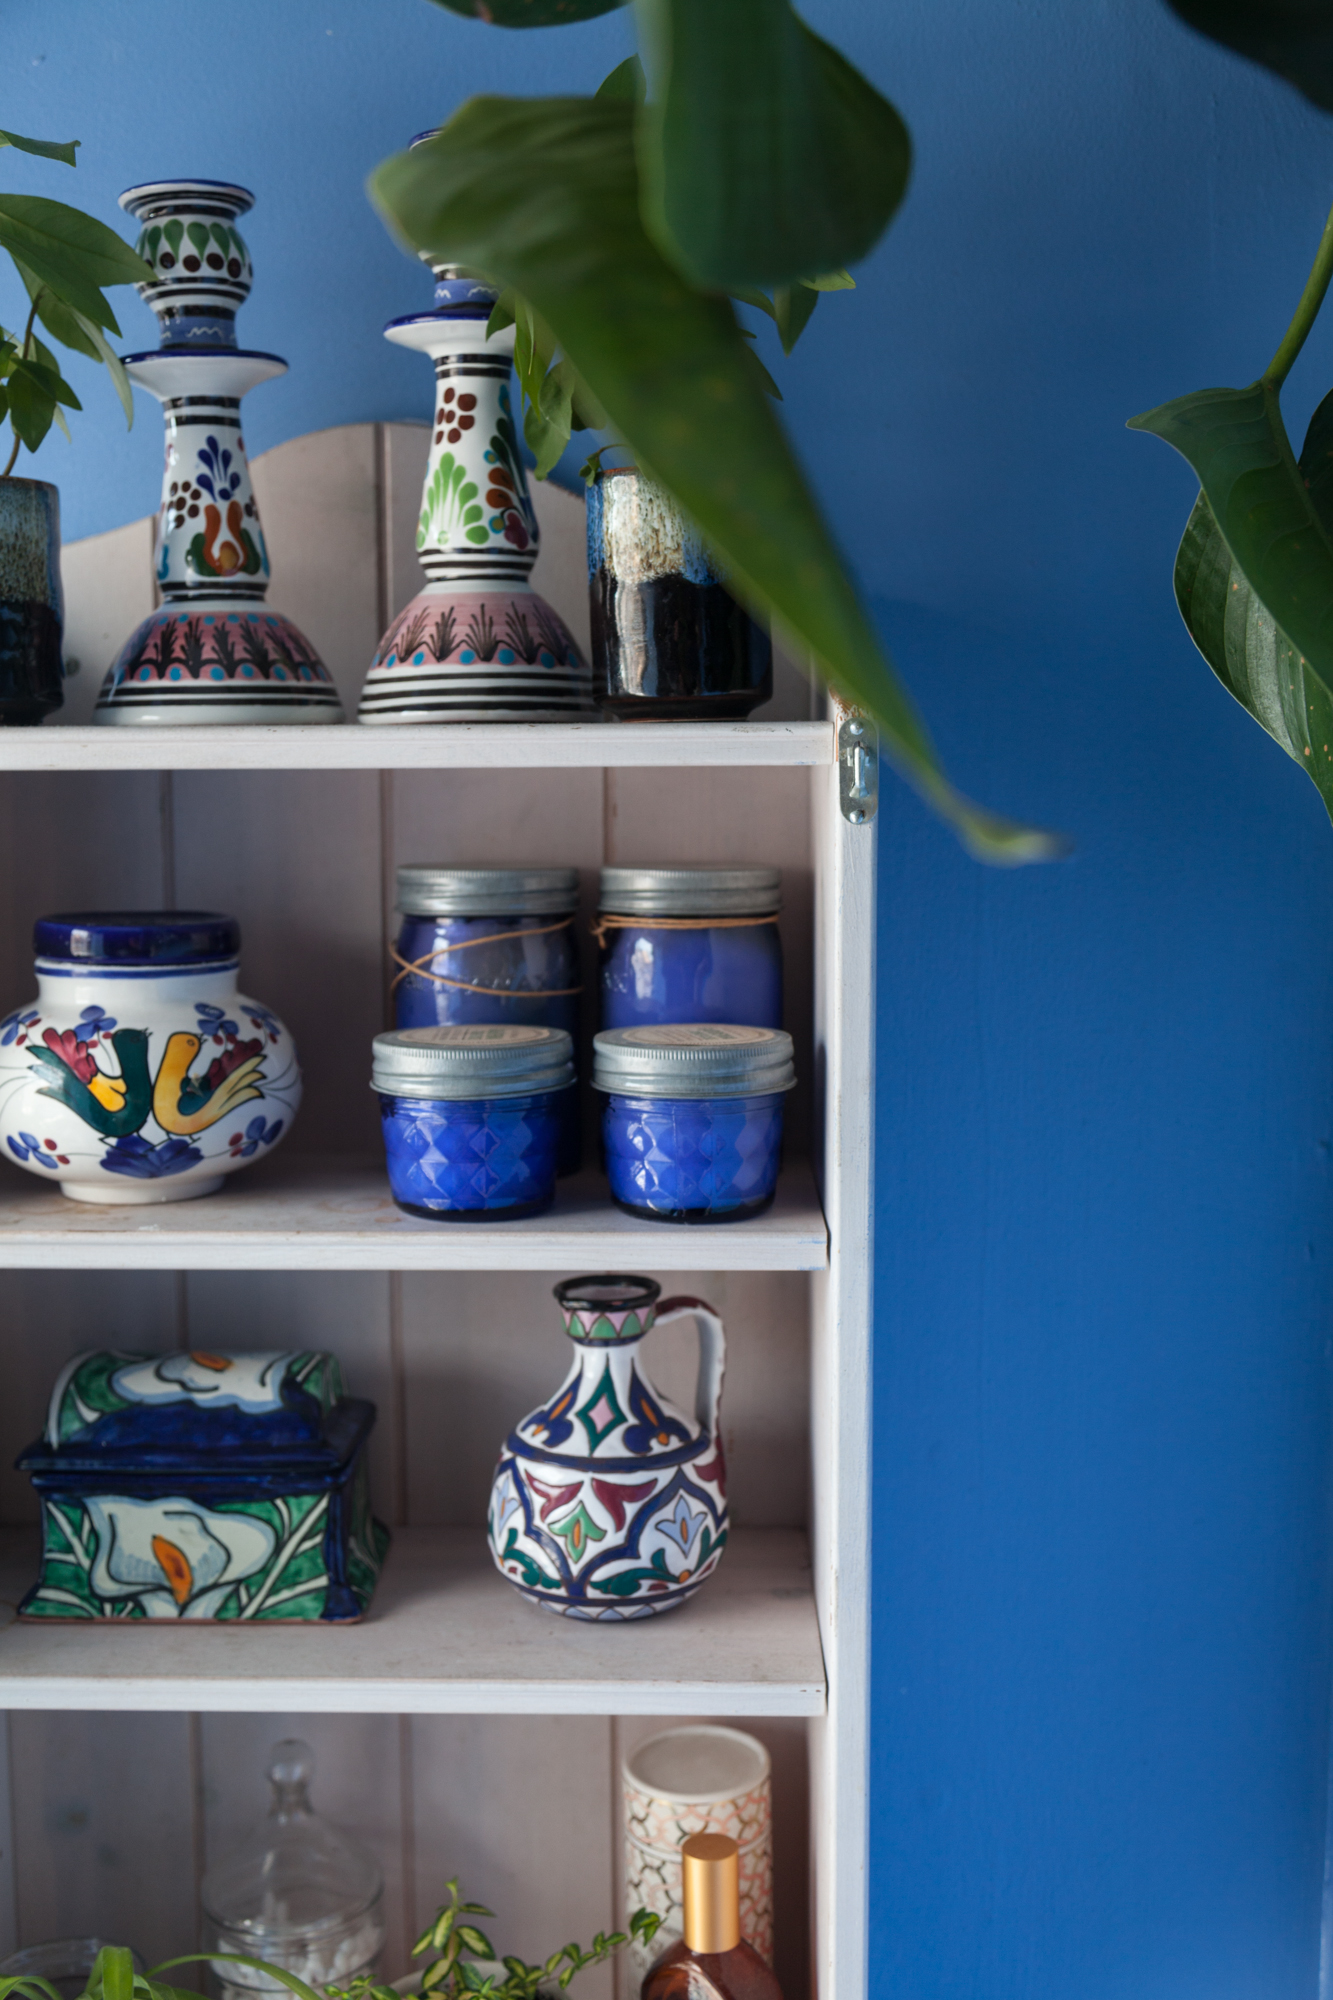 I particularly loved the talavera-look combined with plants in the bathroom.